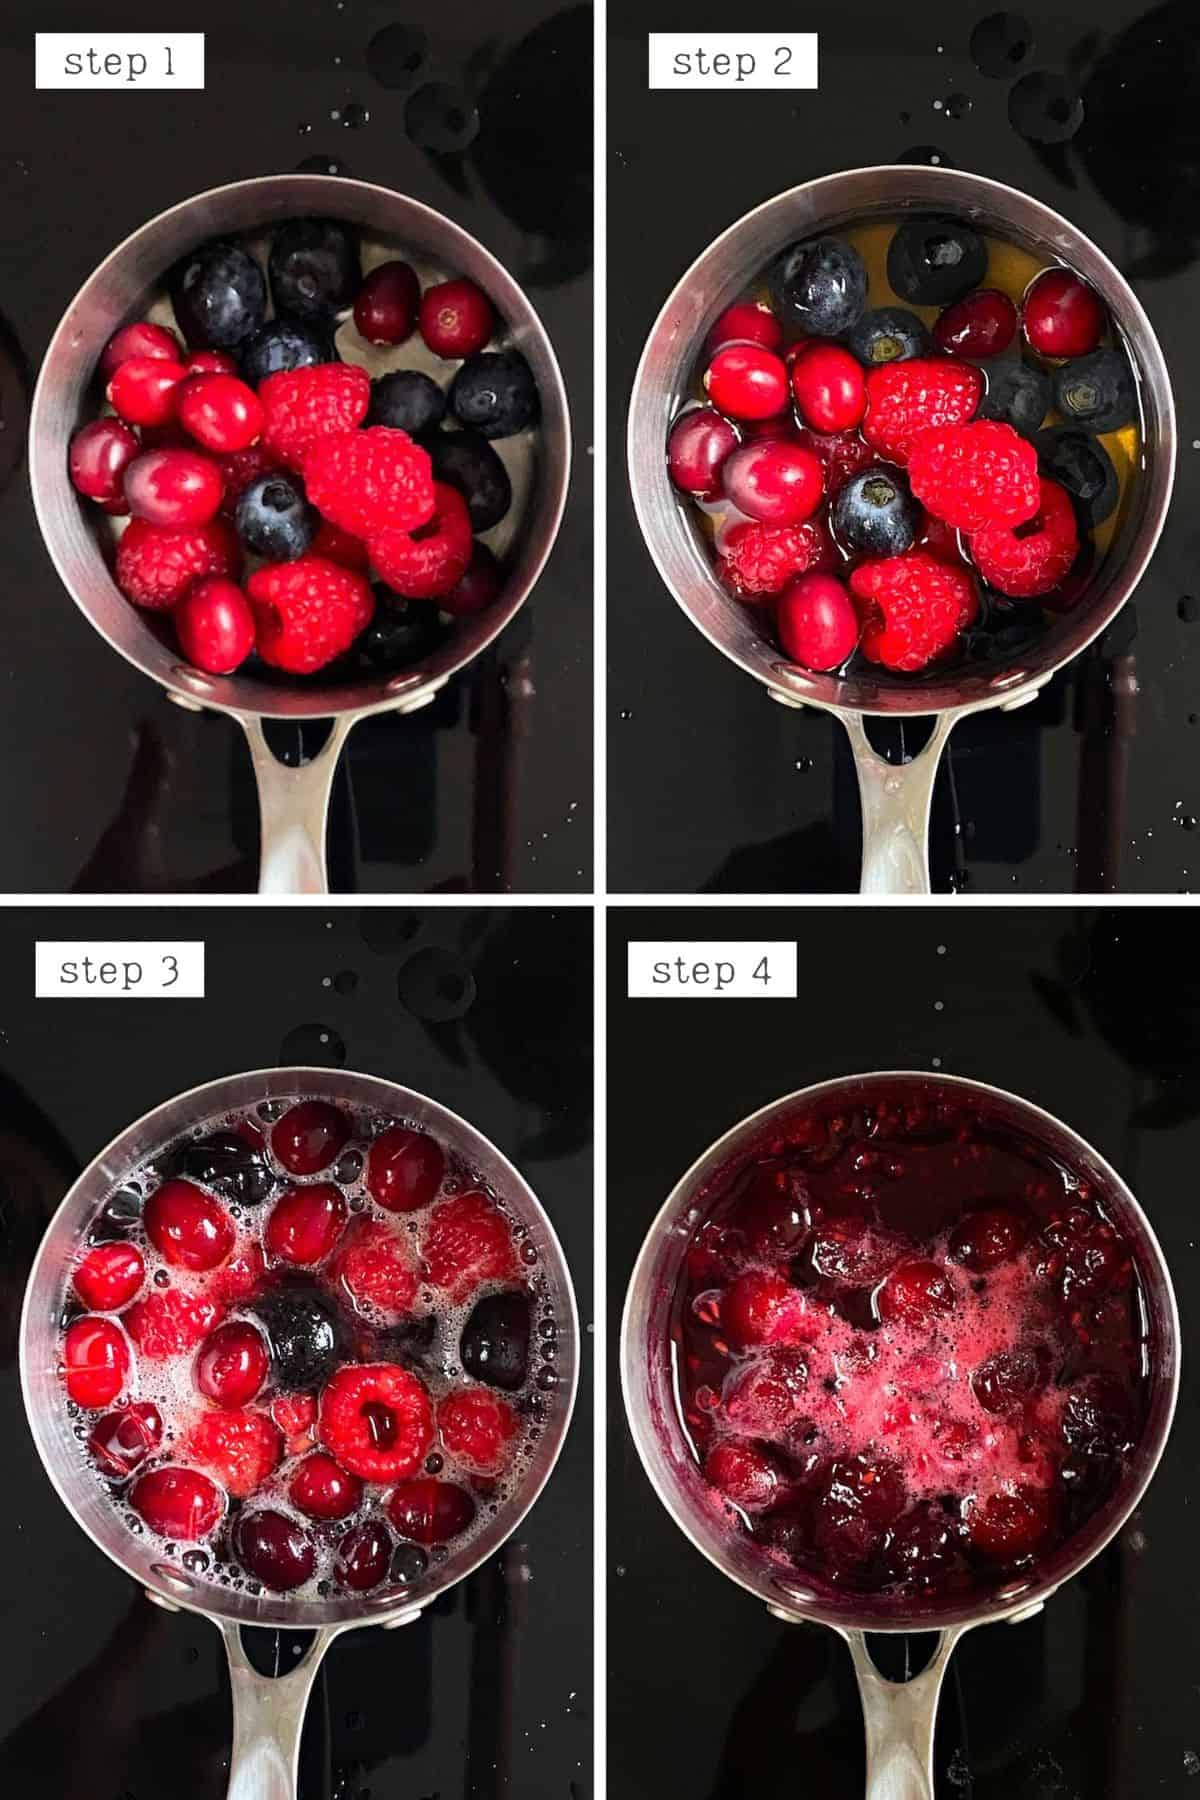 Steps for making mixed berries compote